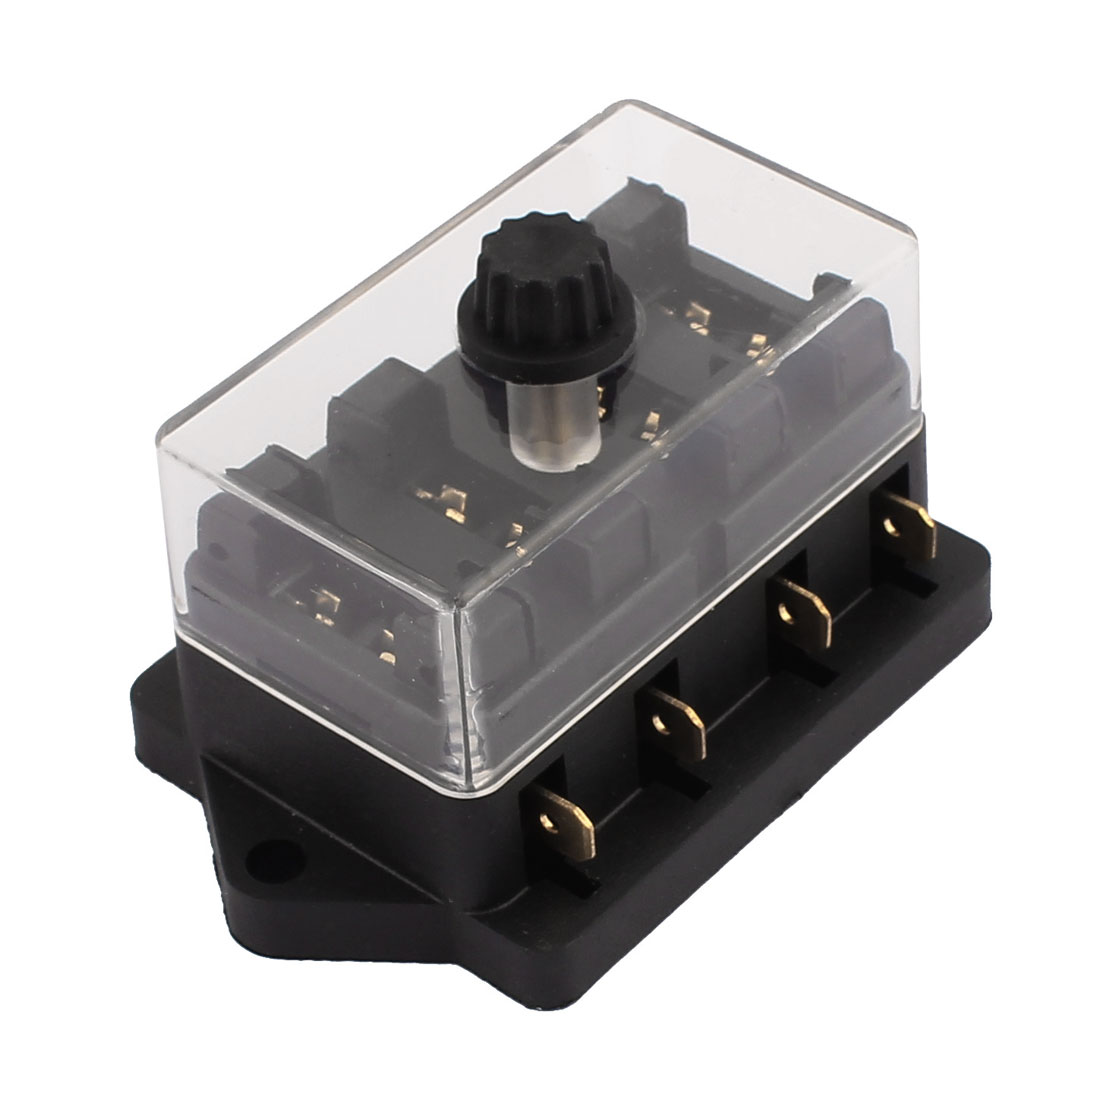 32V 4 Way Lateral Fuse Box Circuit Standard Blade Holder Block Car Truck